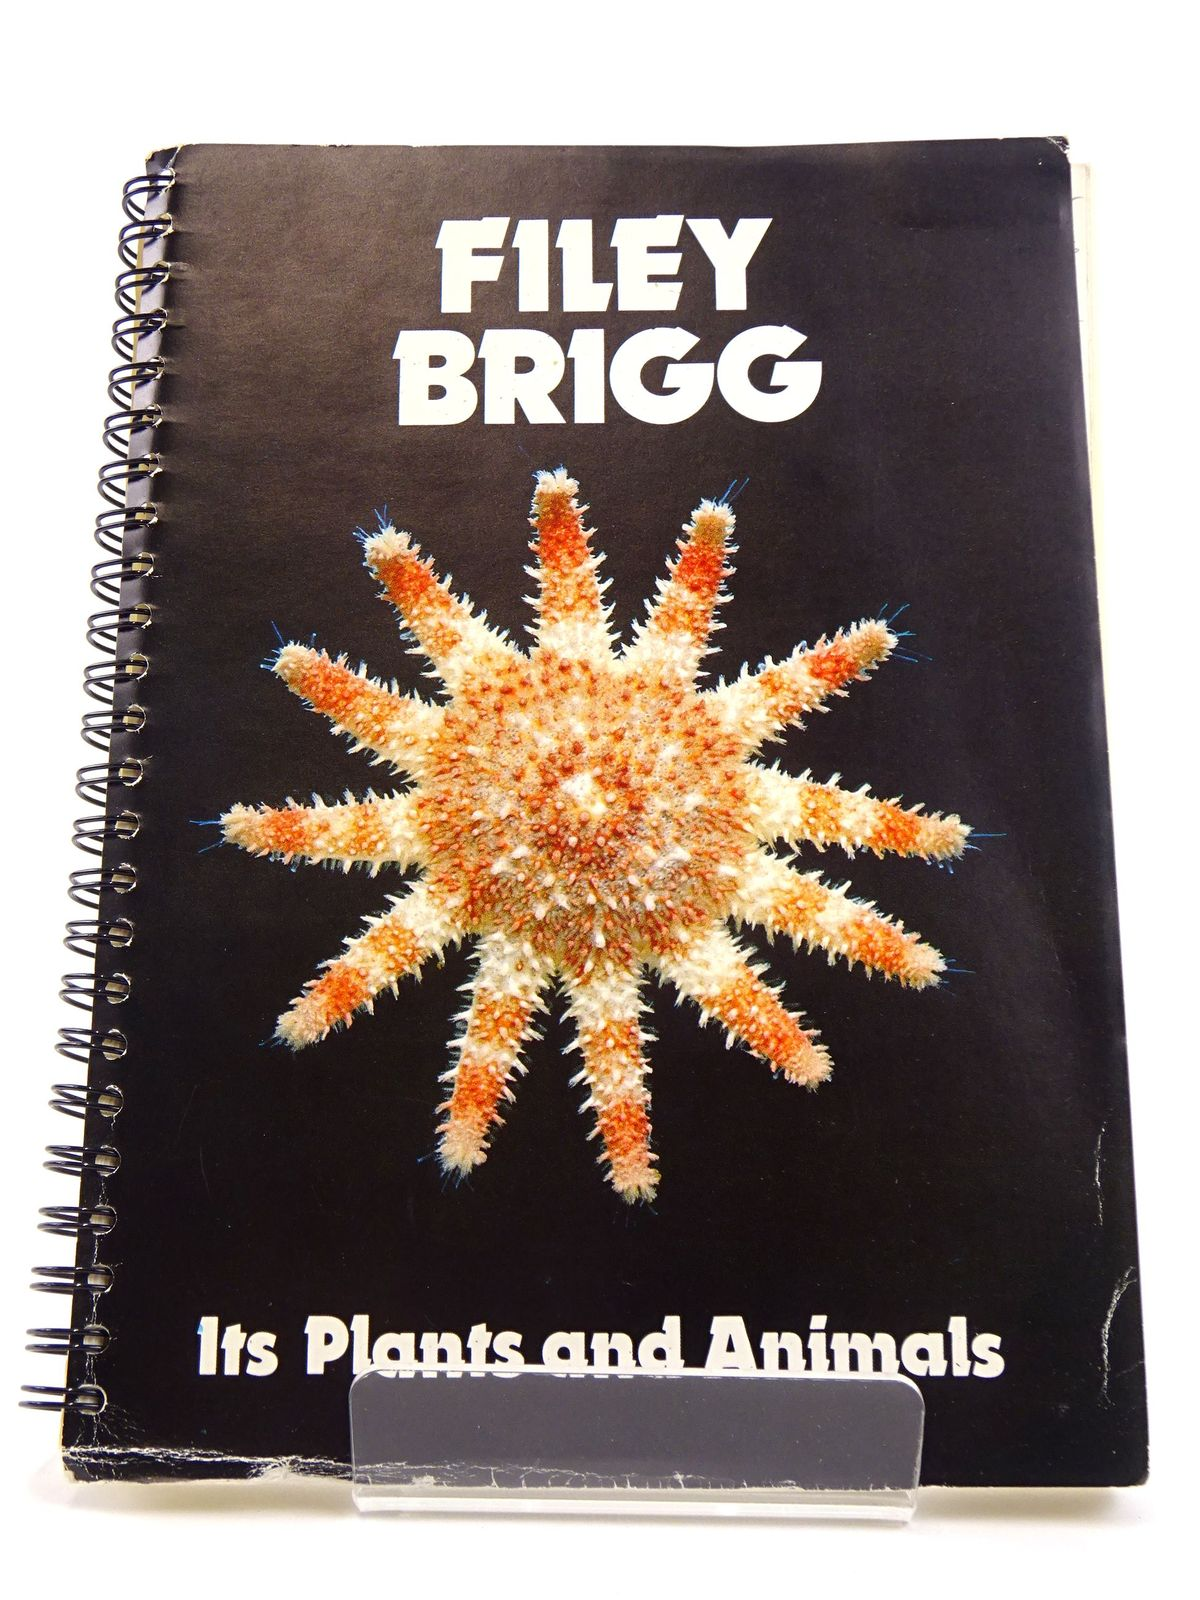 Photo of FILEY BRIGG: ITS PLANTS AND ANIMALS written by Croft, D. Donachie, S.P. Lowsley, D. et al, published by University Of Hull (STOCK CODE: 1818172)  for sale by Stella & Rose's Books